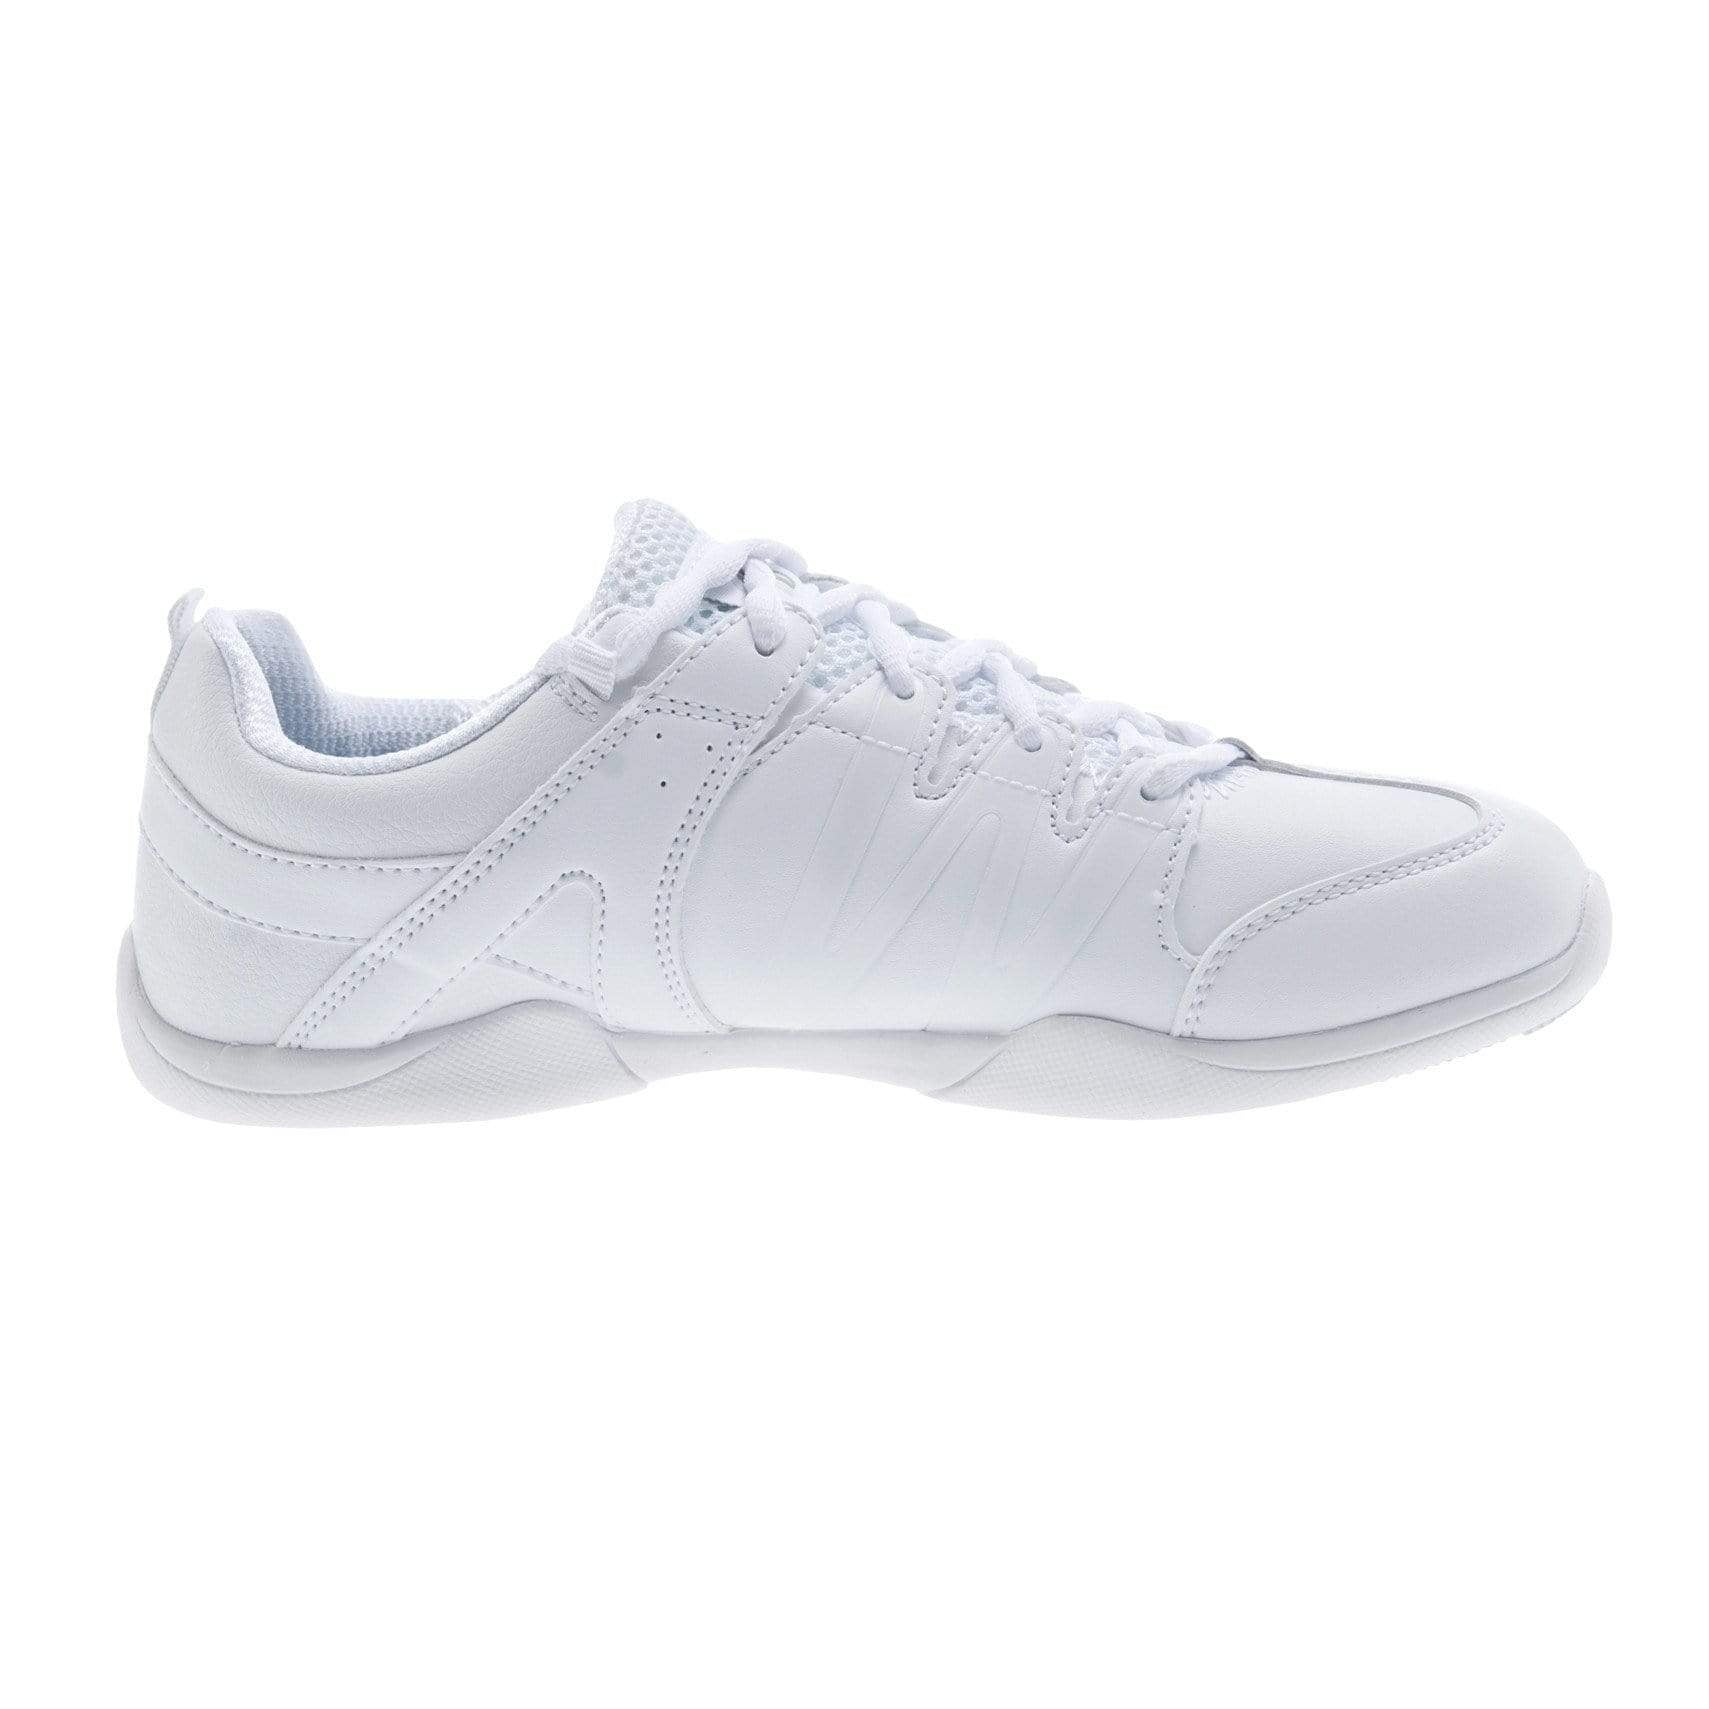 varsity cheer shoes near me outlet